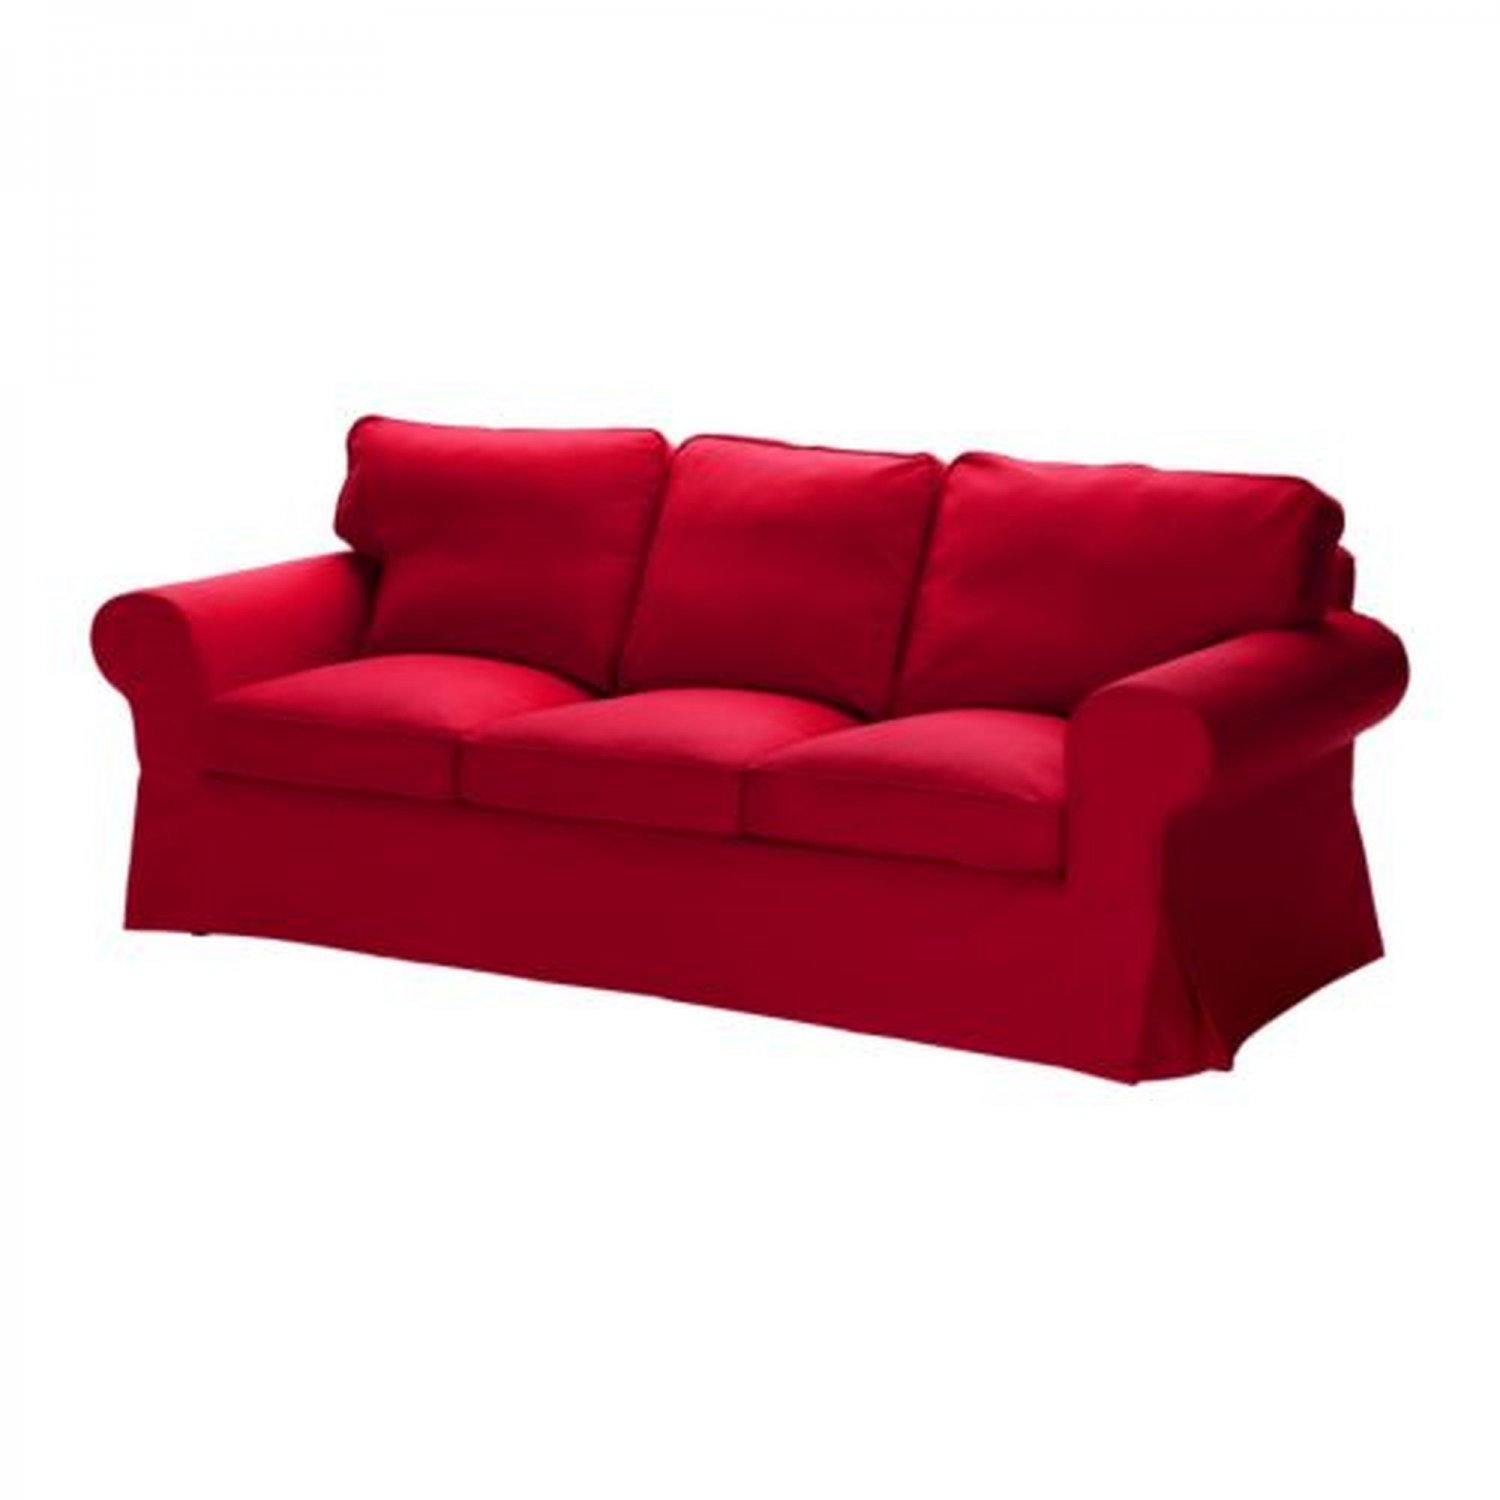 1 frame cover which attaches with velcro, one bottom seat cushion cover, 2 back. IKEA EKTORP 3 Seat Sofa SLIPCOVER Cover IDEMO RED